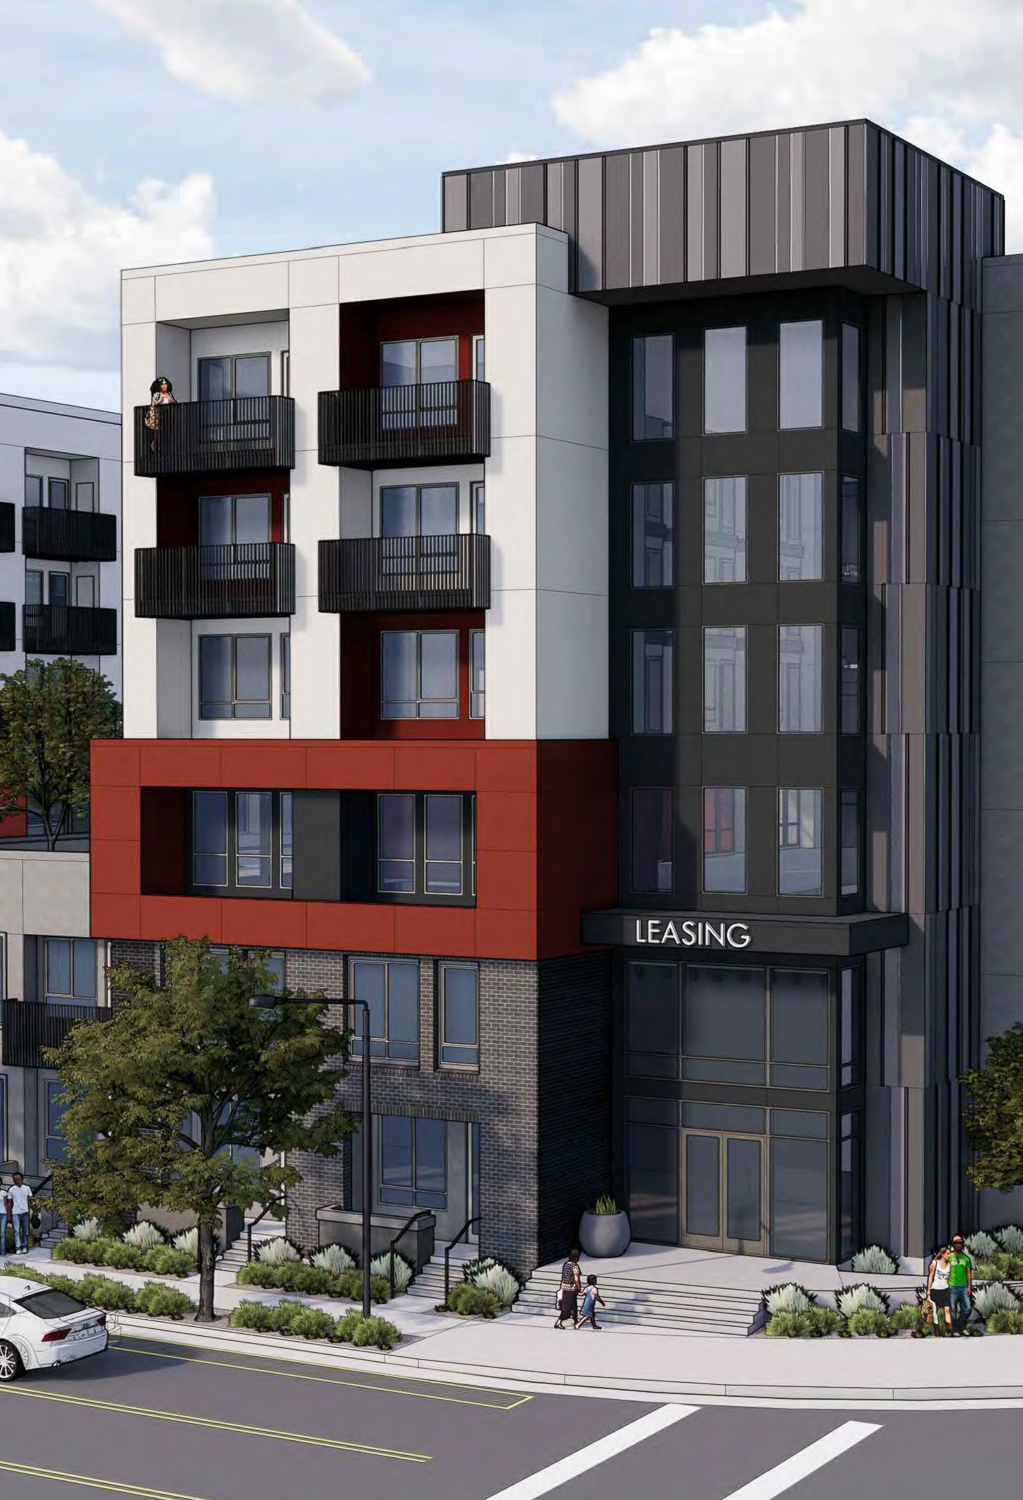 2233 Calle del Mundo southeast corner, rendering by KTGY Architects